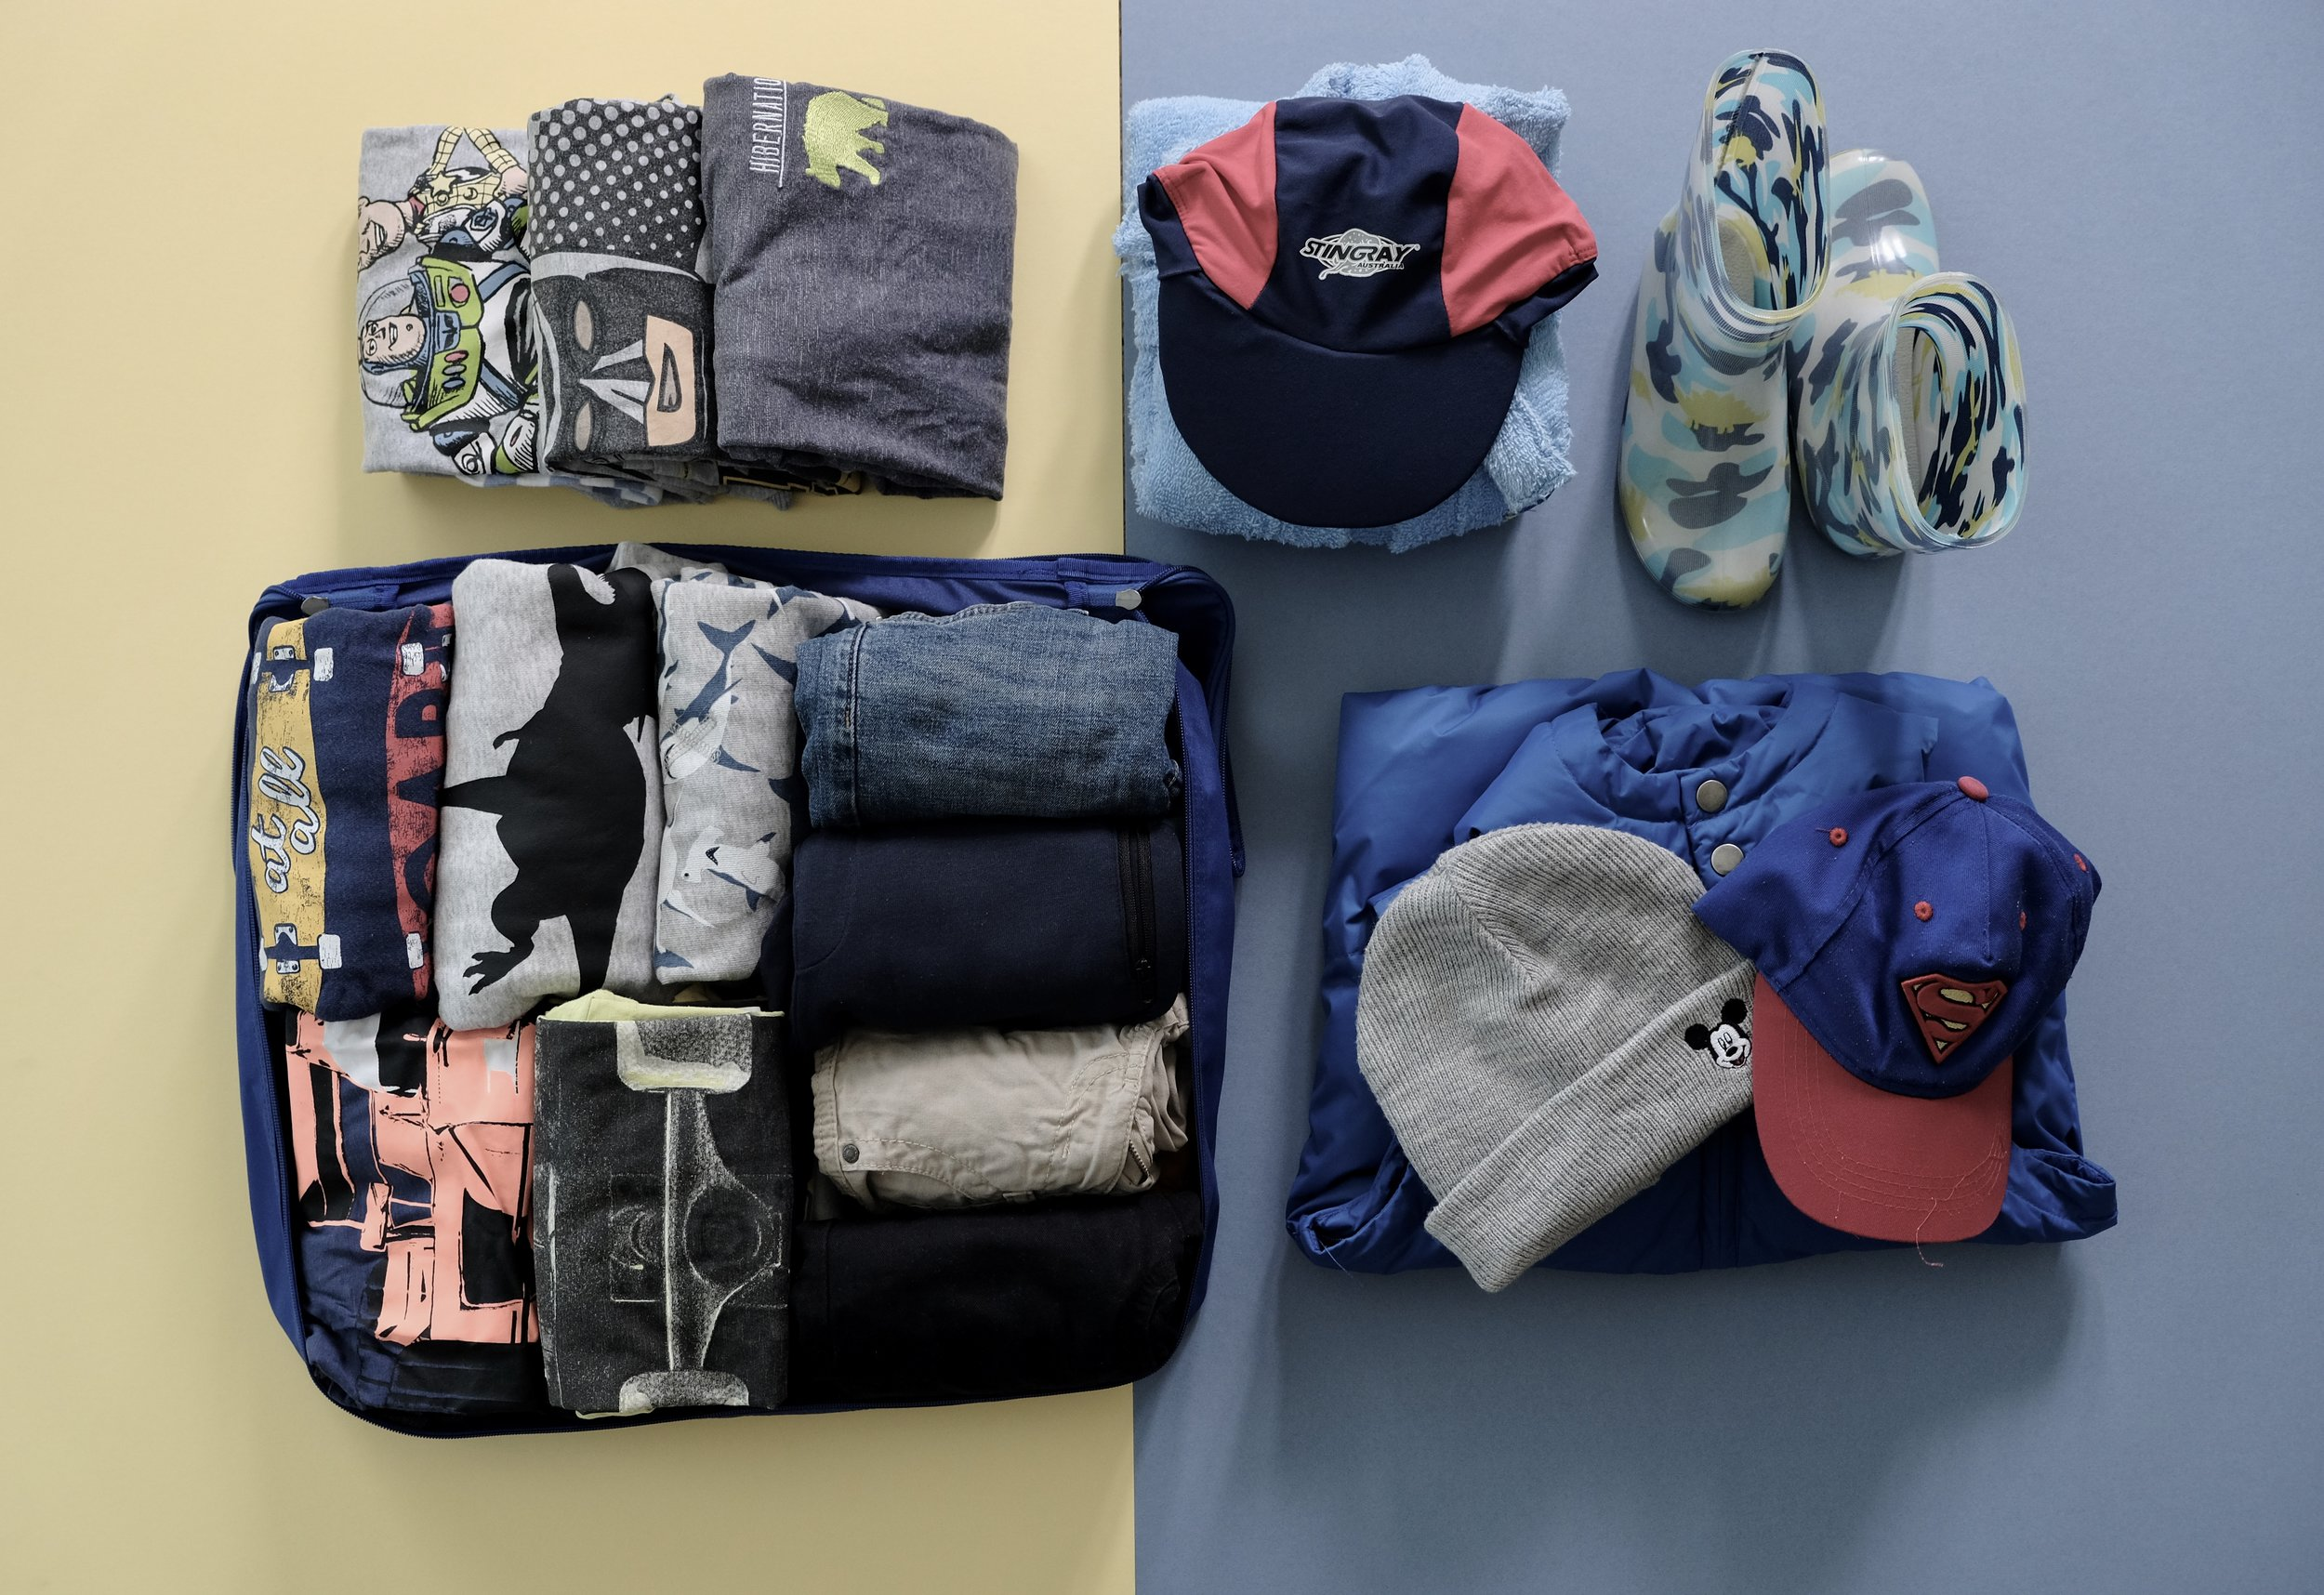 I use  packing bags  to organise and contain the clothing.